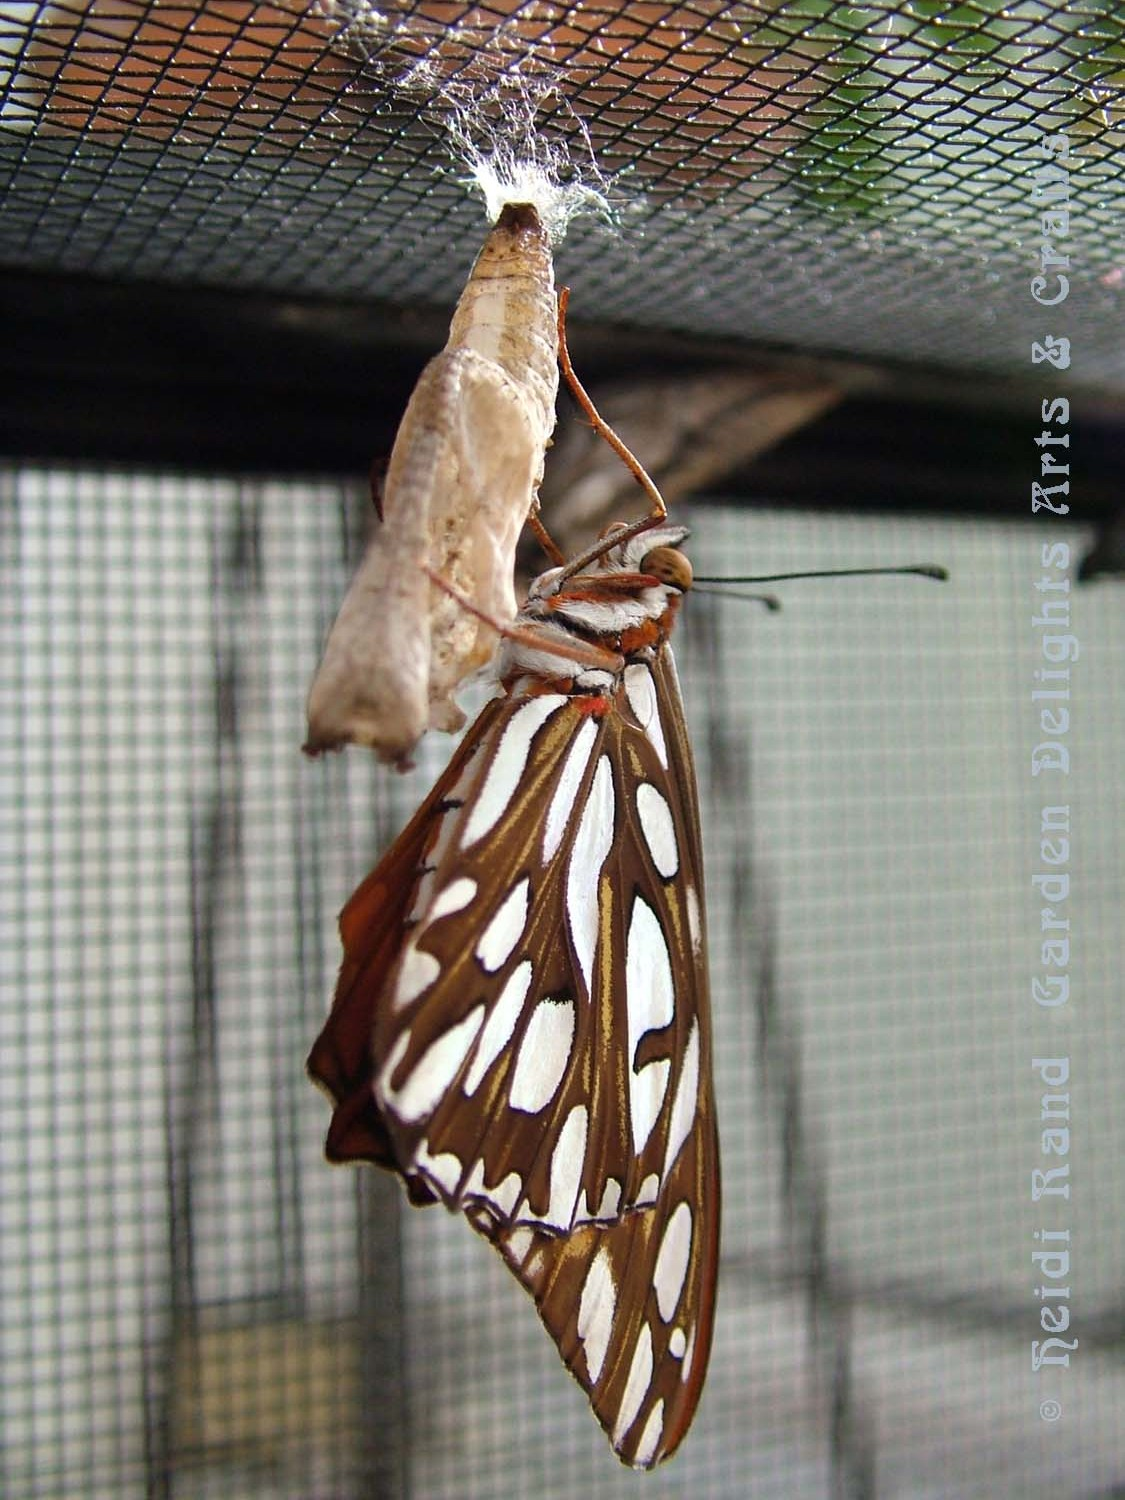 Fritillary on chrysalis